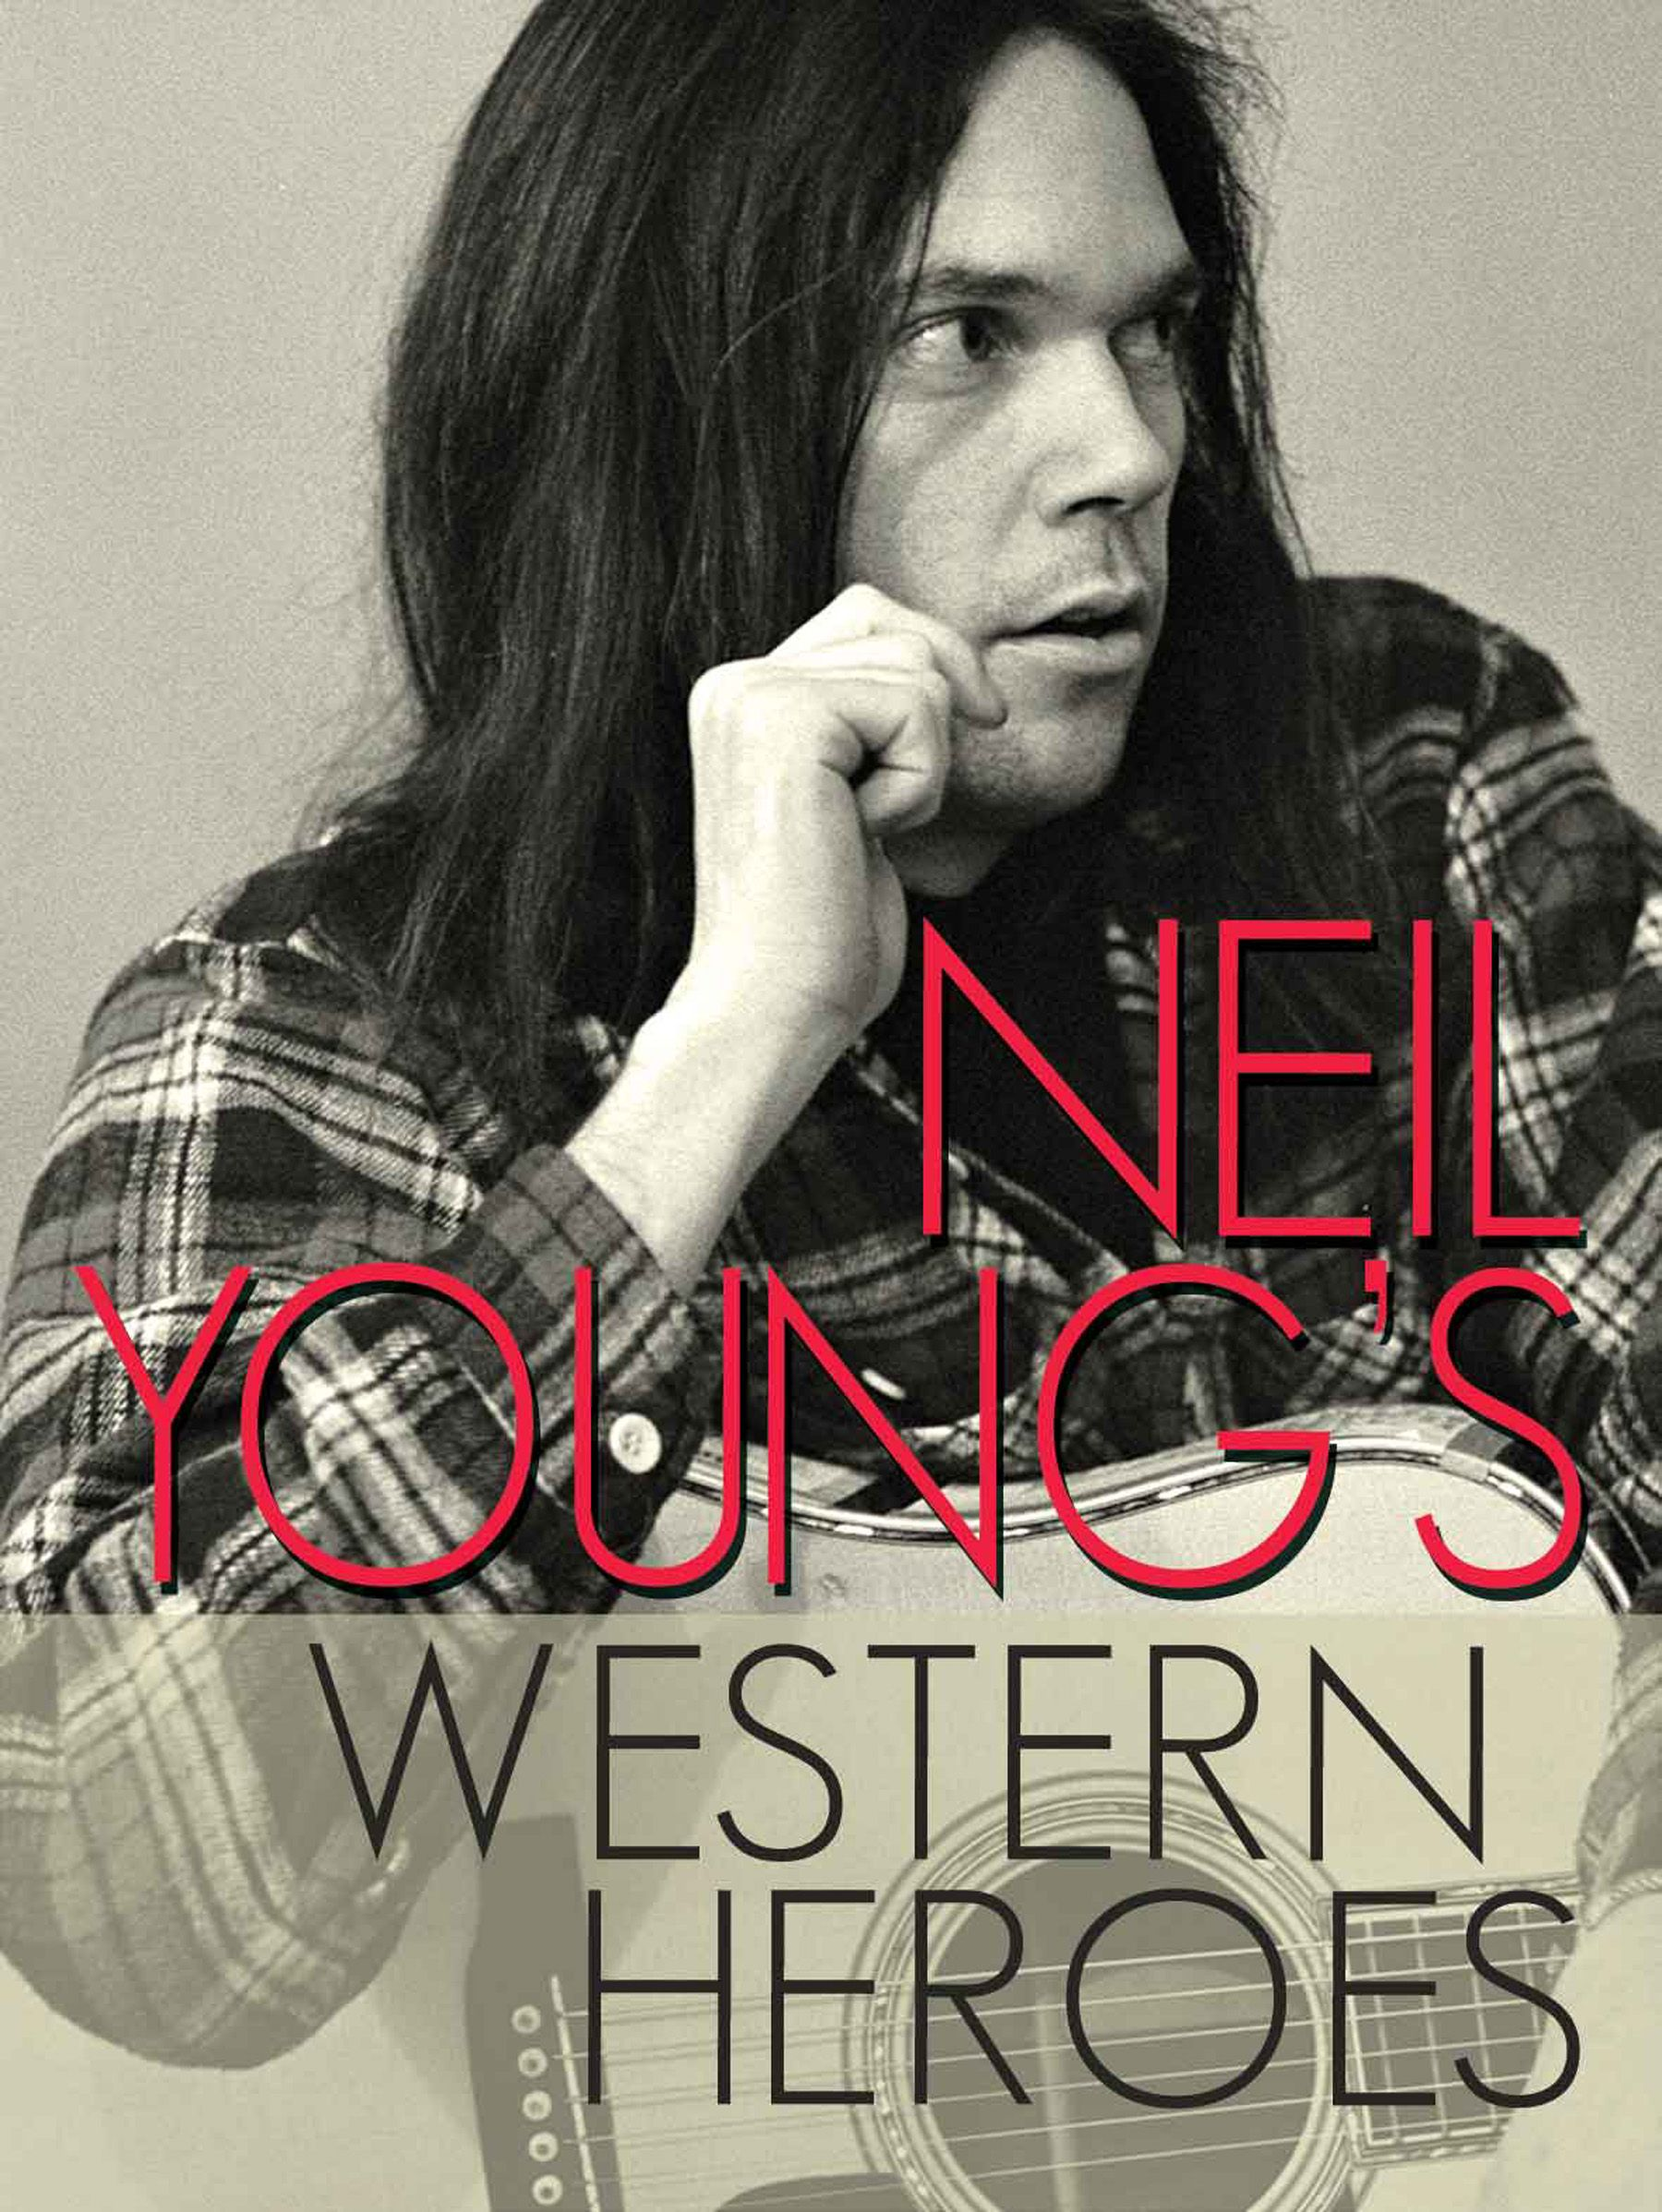 Neil Young's Western Heroes